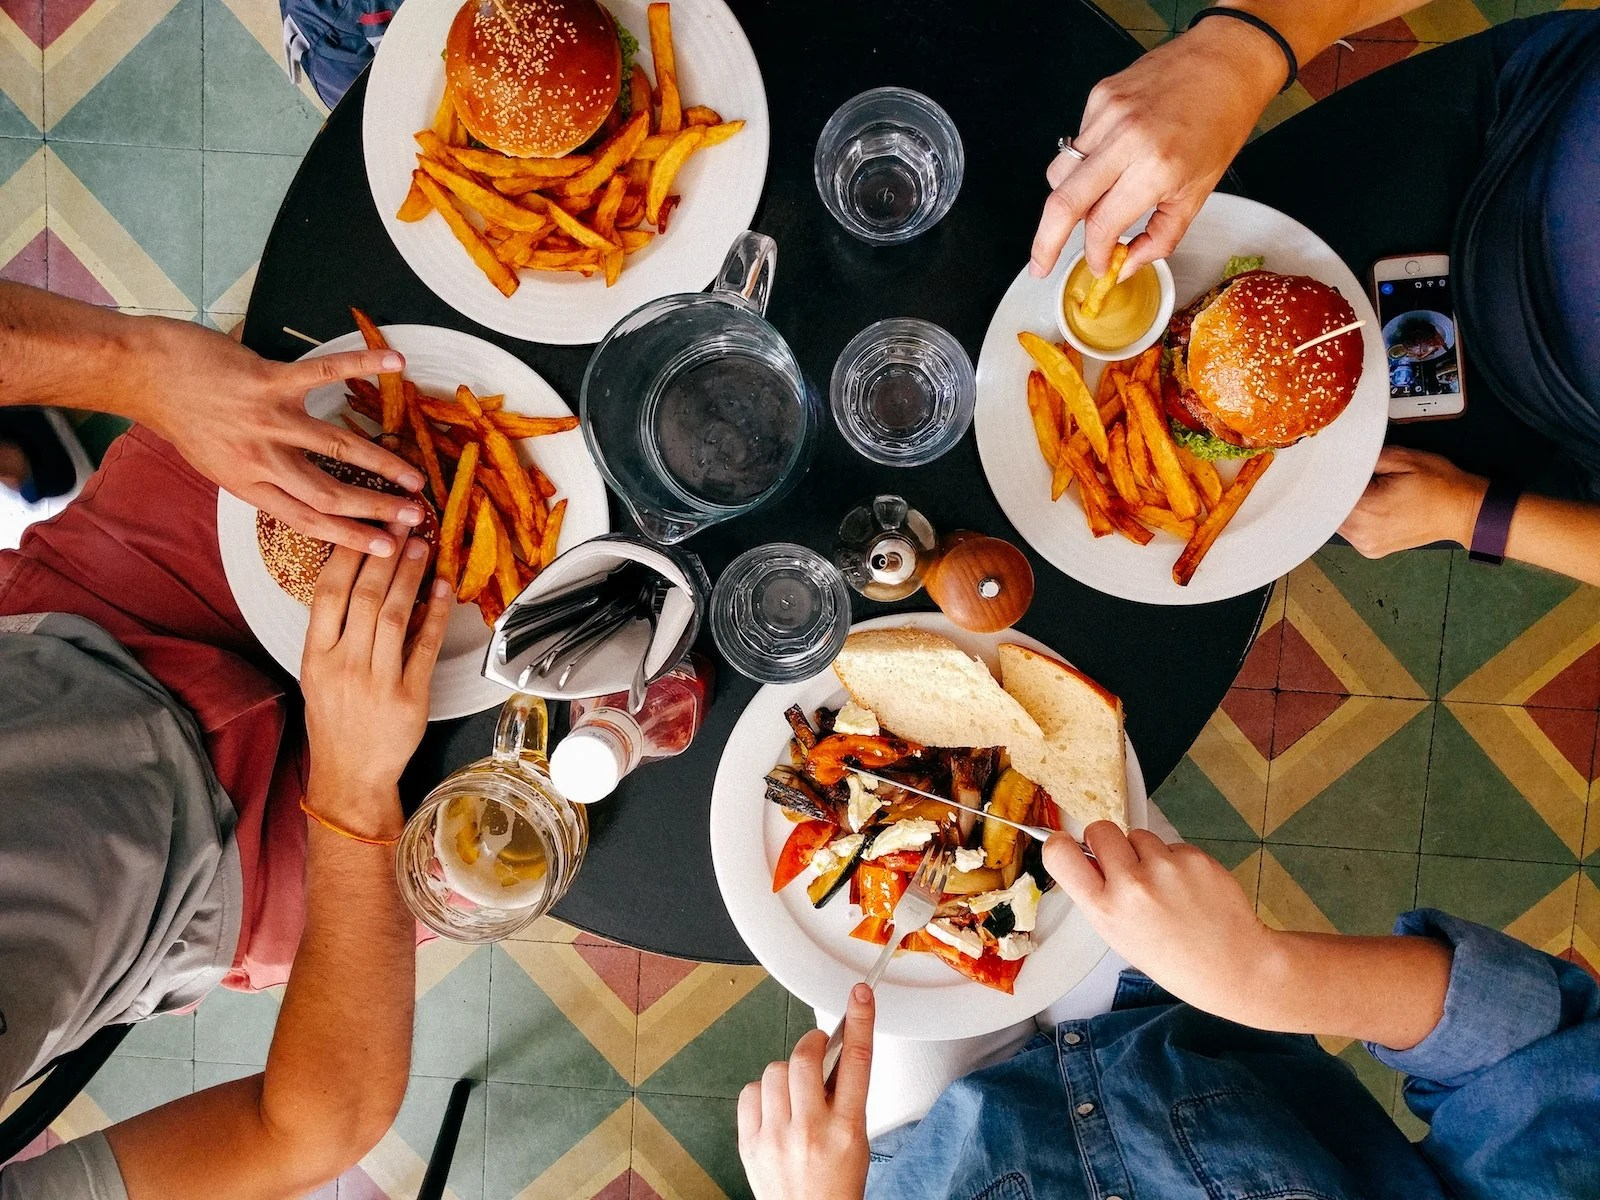 Etiquette That Will Get You Better Service When Dining Out